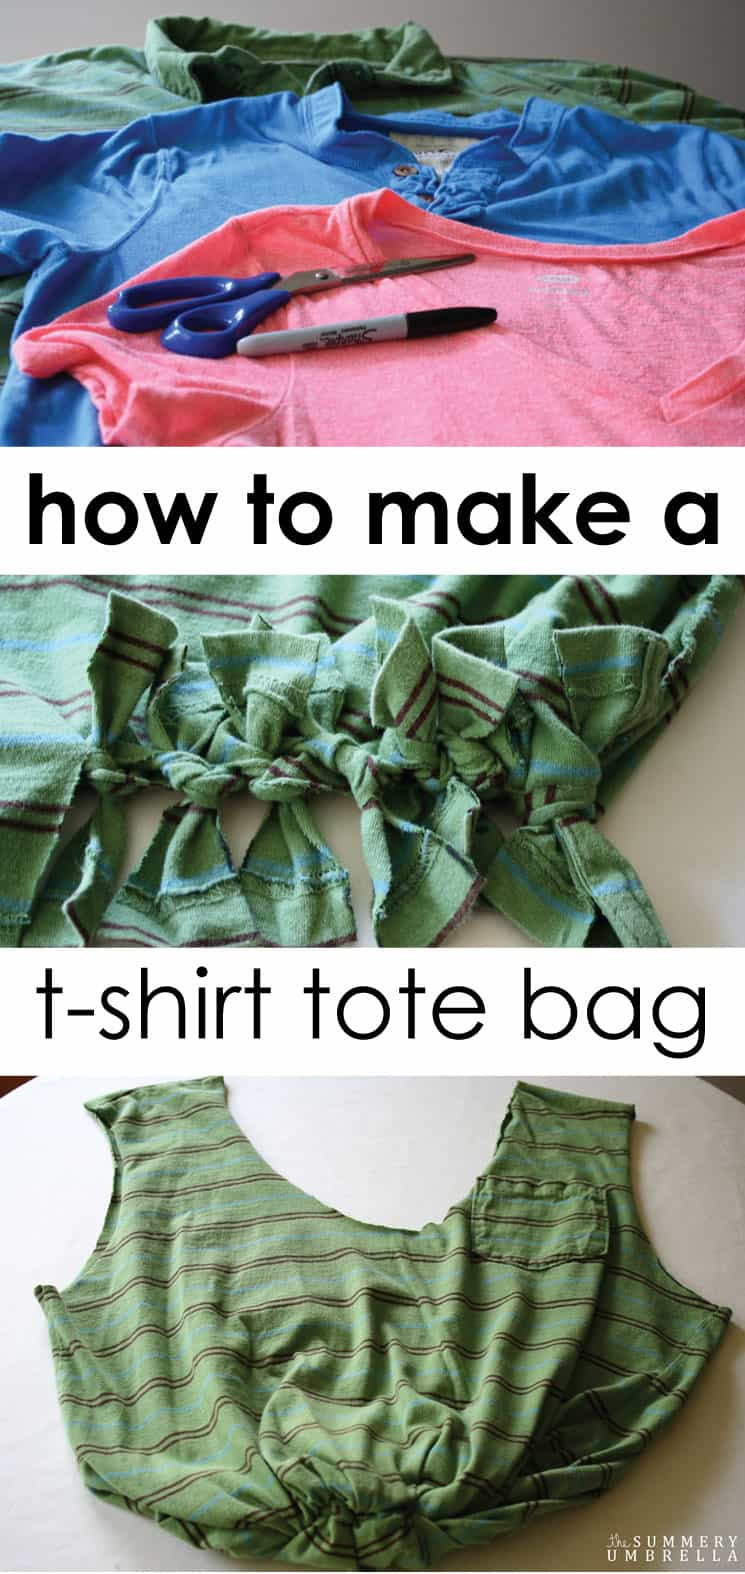 Hands down, this is the EASIEST way to make any kind of t-shirt tote bags! Trust me, you will WANT to see how to create your very own bag the right way.